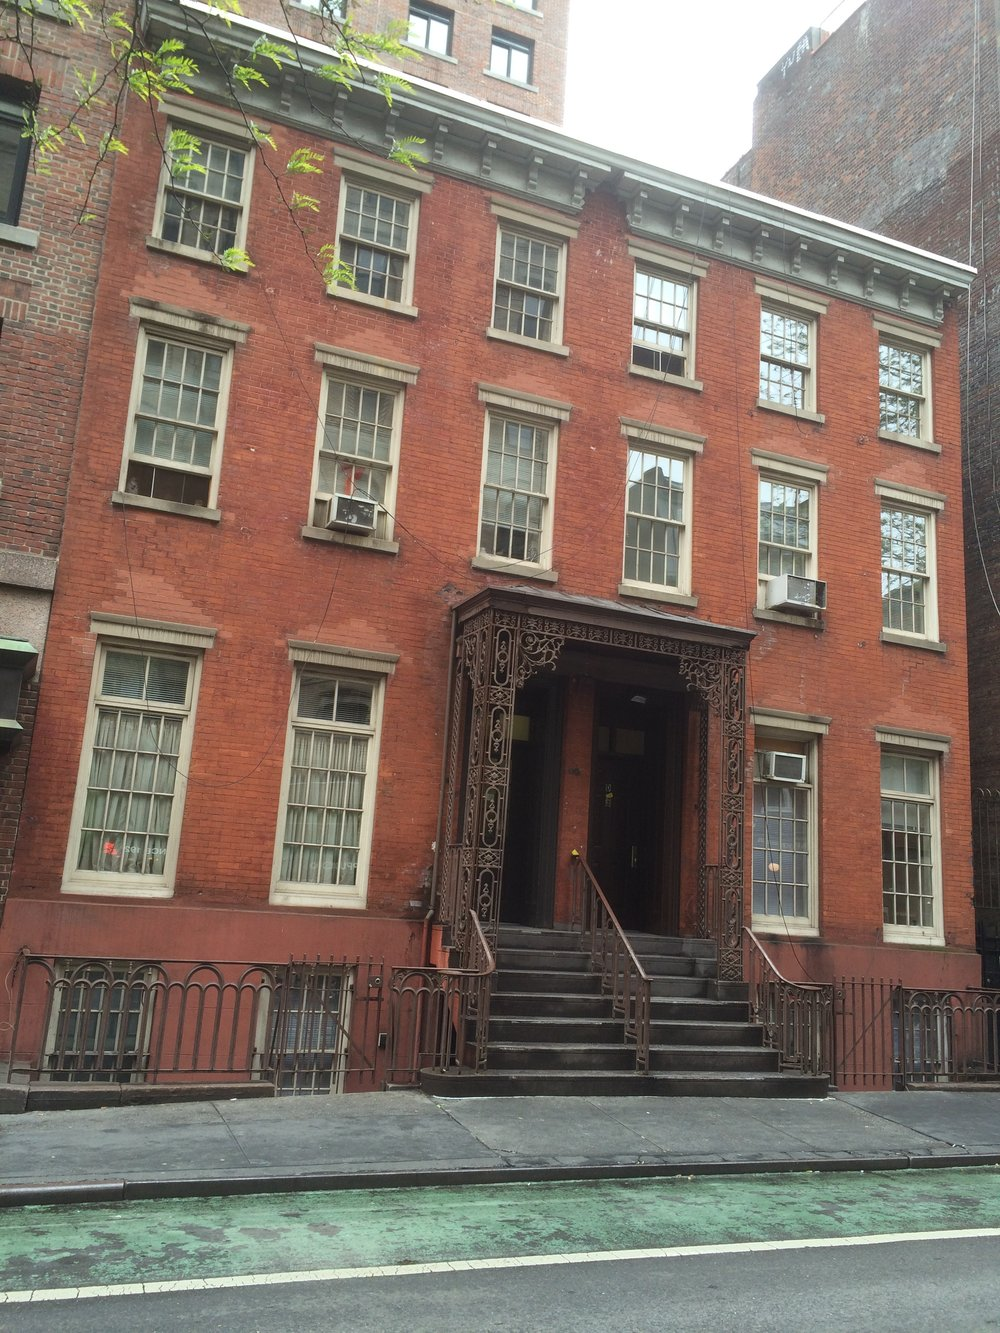 In 1868, Louisa May Alcott reportedly wrote the last paragraphs of  Little Women  from her uncle's double-wide red townhouse at 130-132 MacDougal.